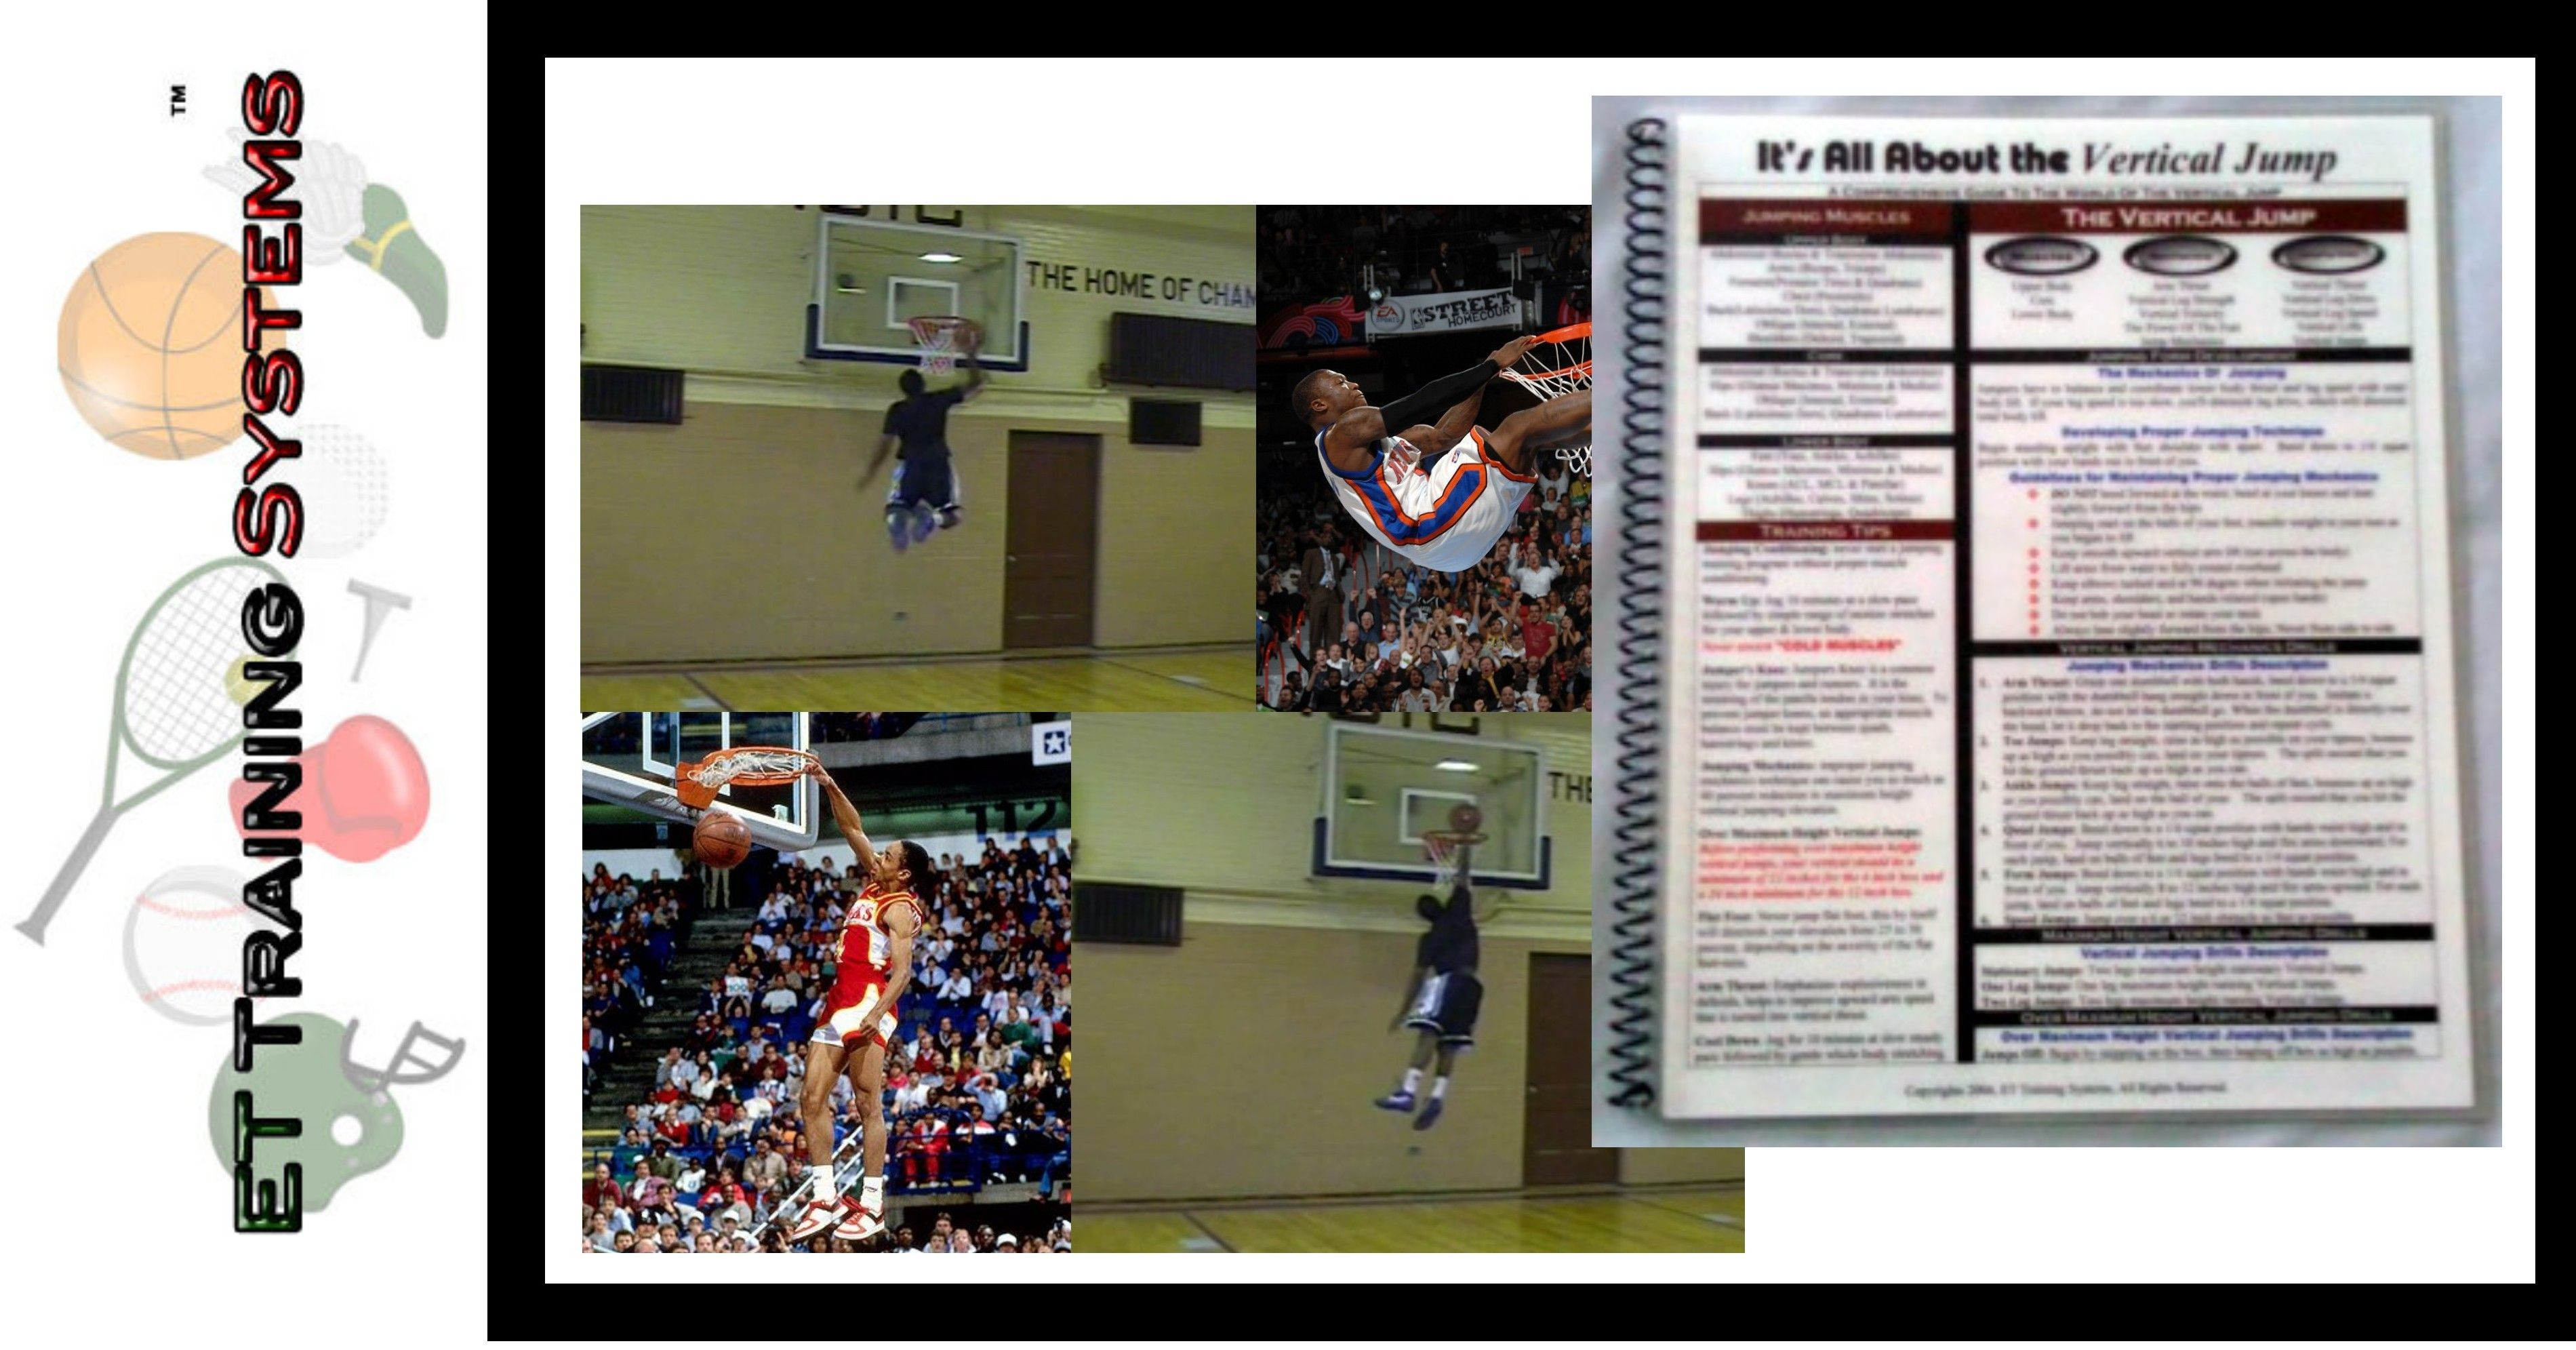 The Secret To Maximizing Your Vertical Jump Improve Your Vertical Jump Improve Your Hang Time Improve Your Vertical Jump Training Jump Track And Field